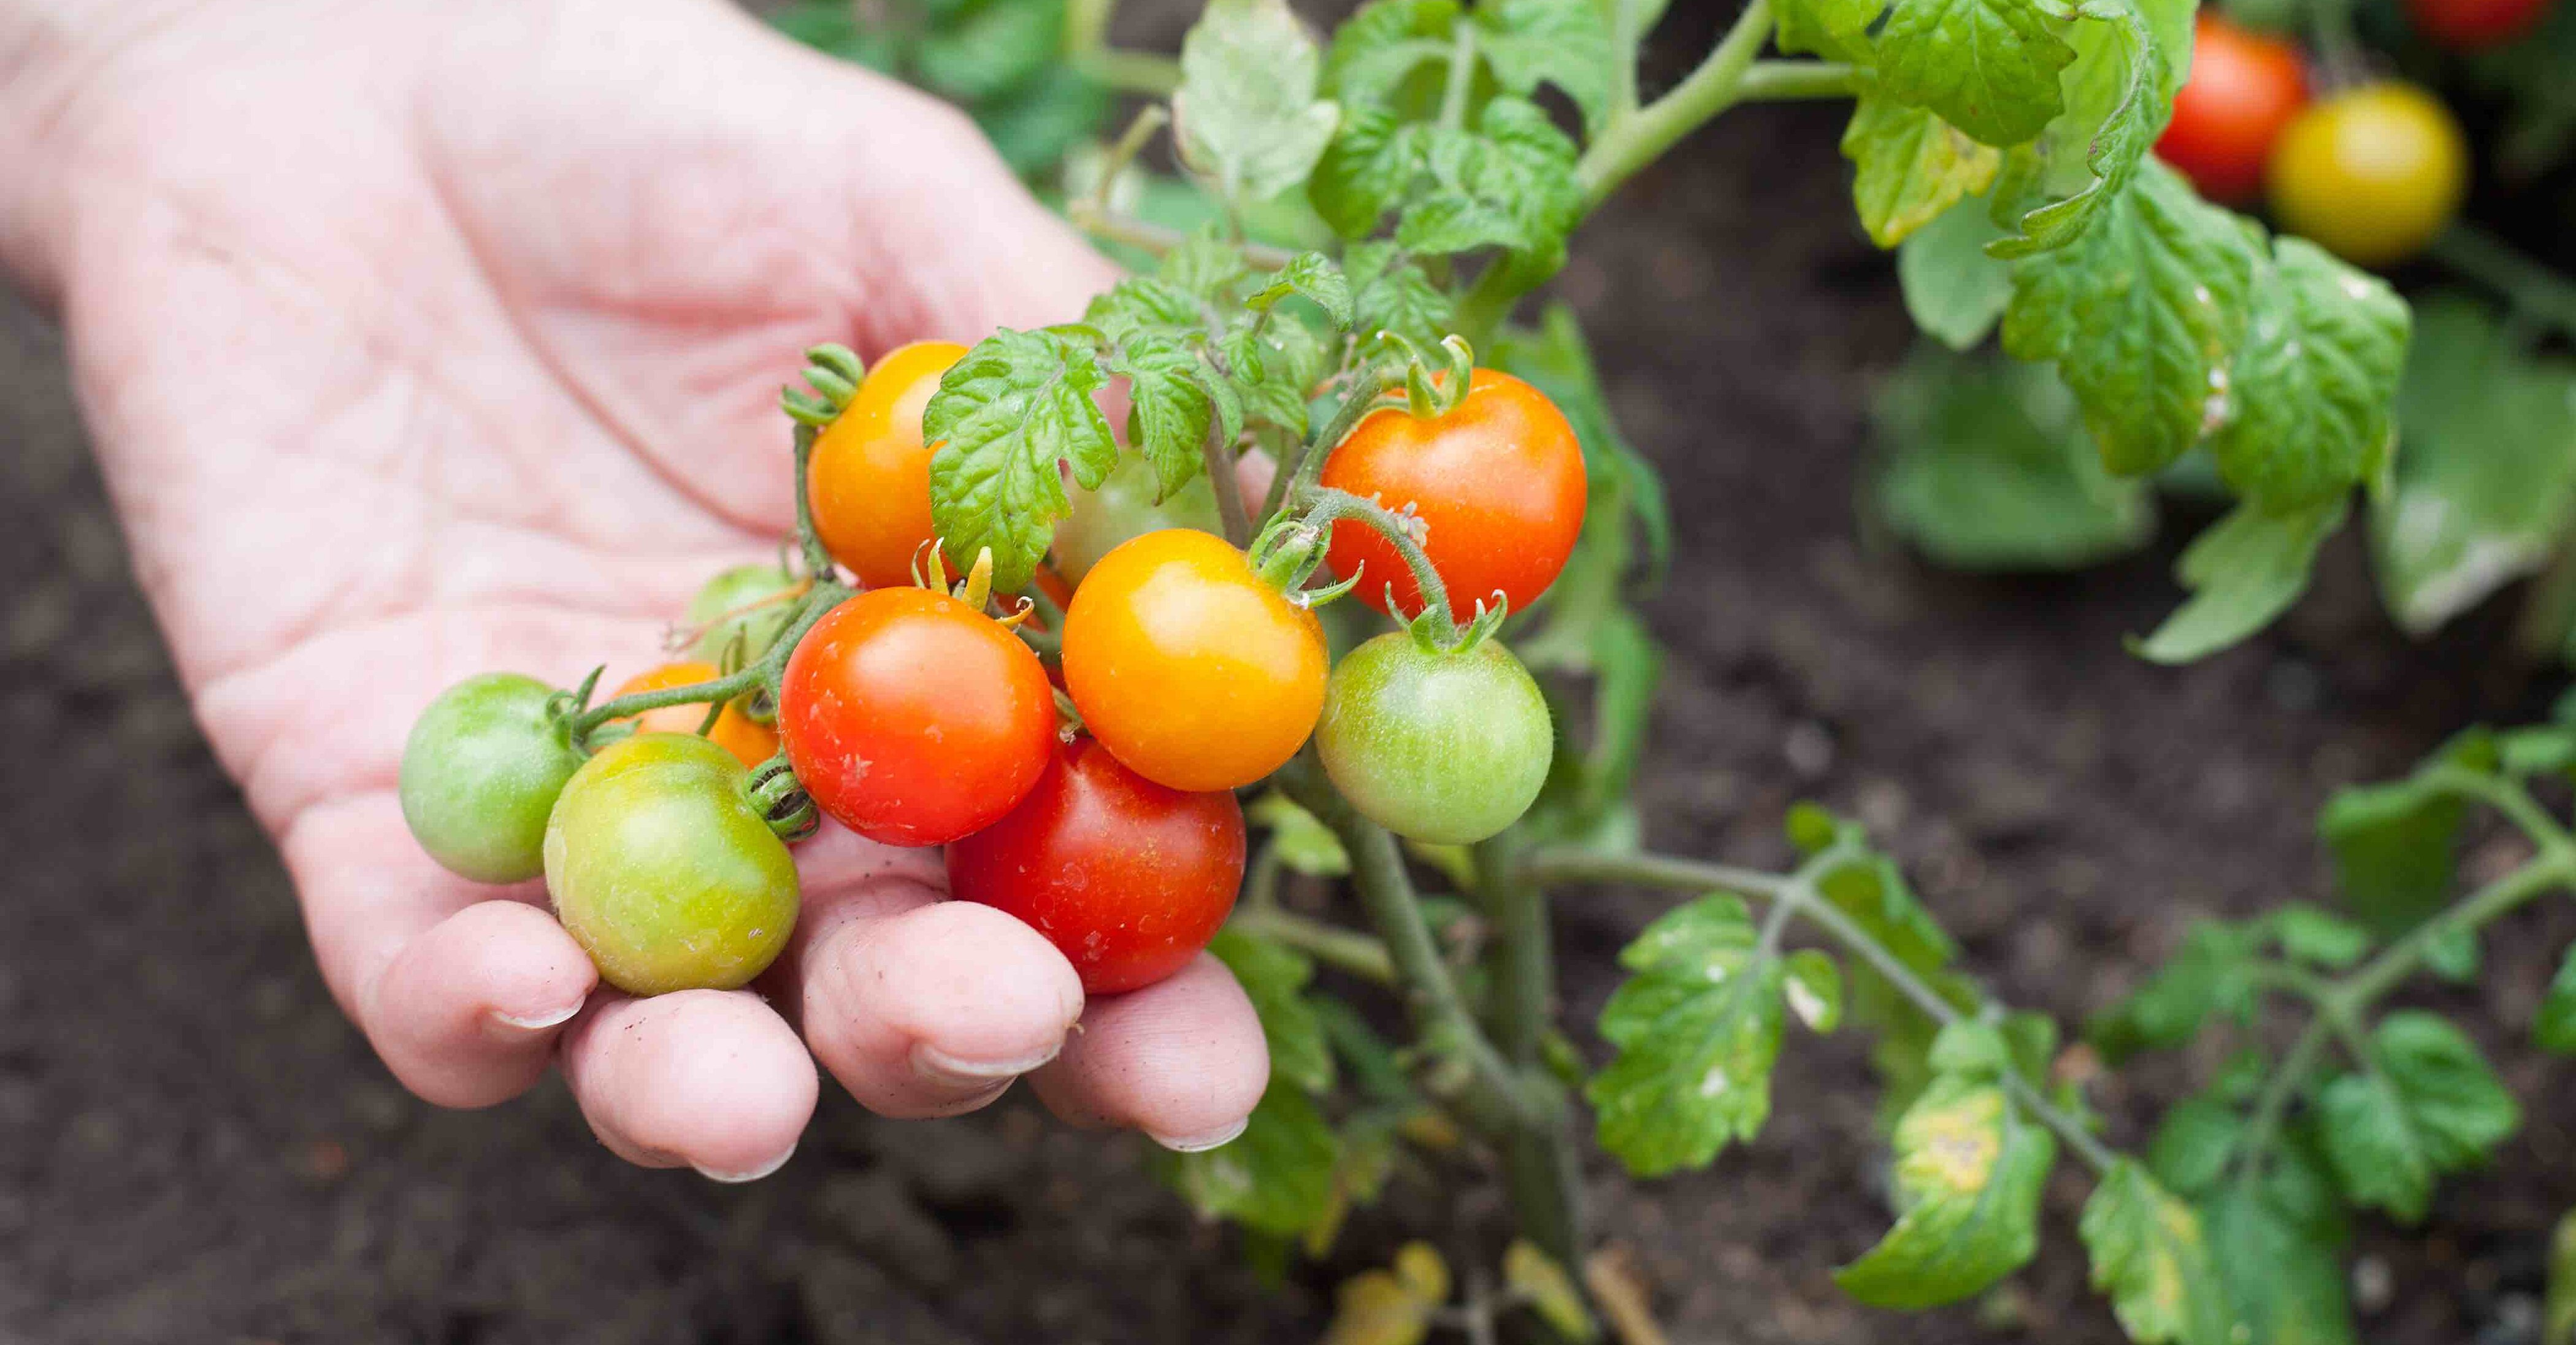 How to Prune and Maintain Your Tomato Plants